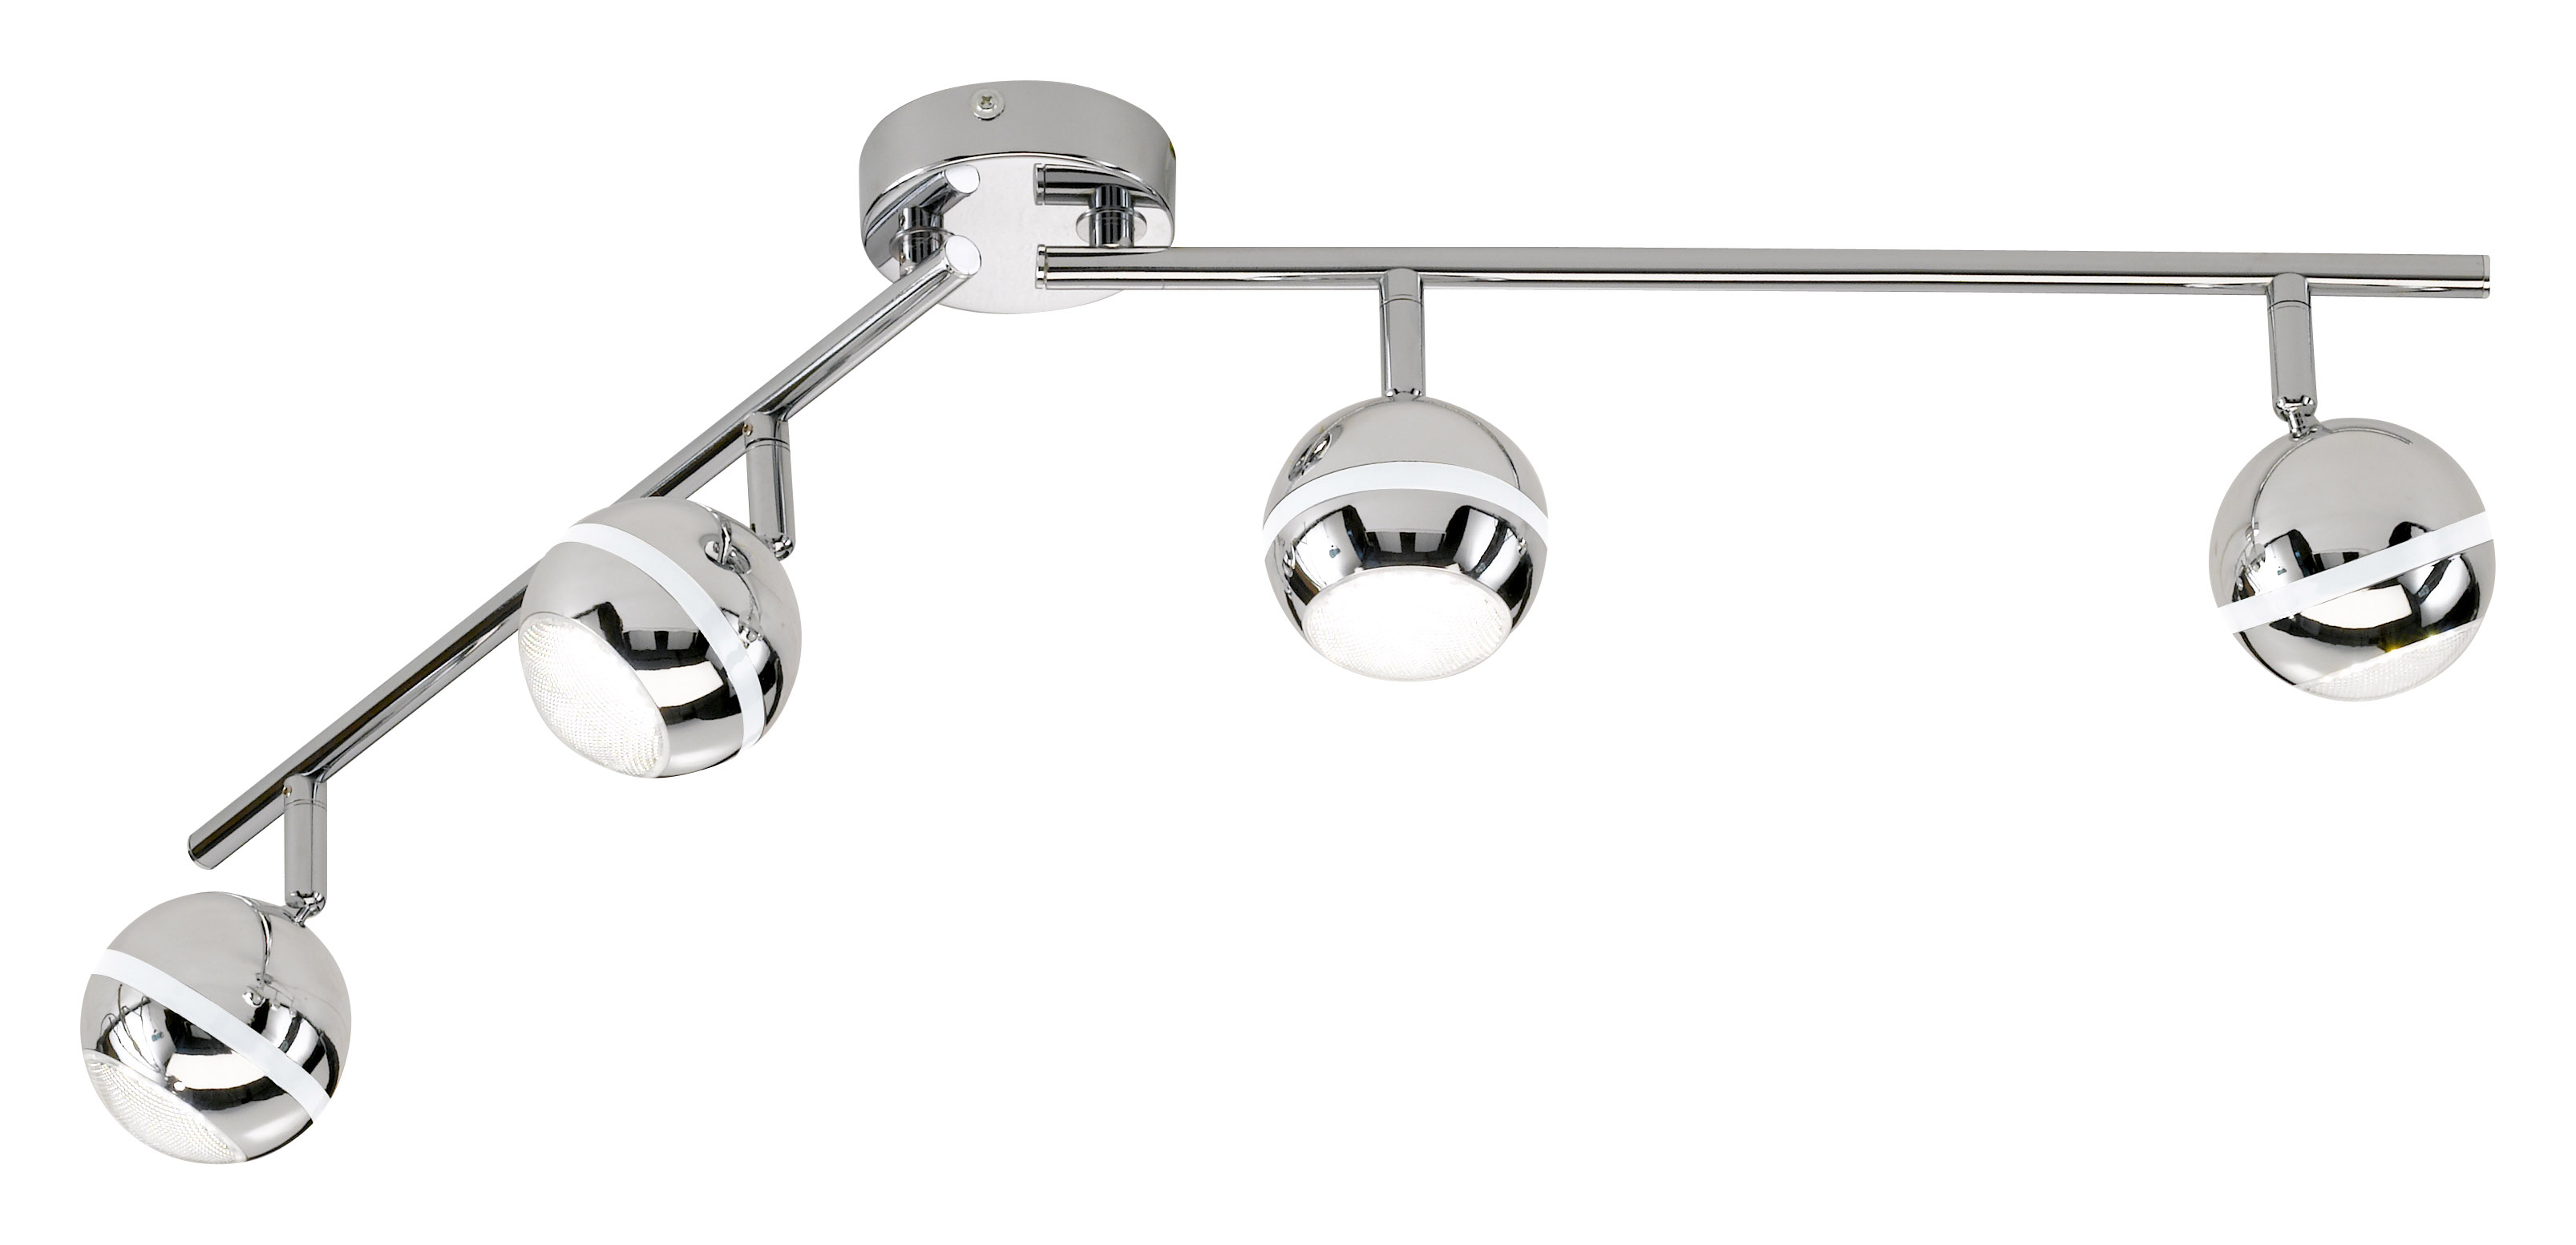 Ilja Led Built In Spotlight Adjustable Bar Mounted Adjustable Led Spot Lights Leyton Lighting